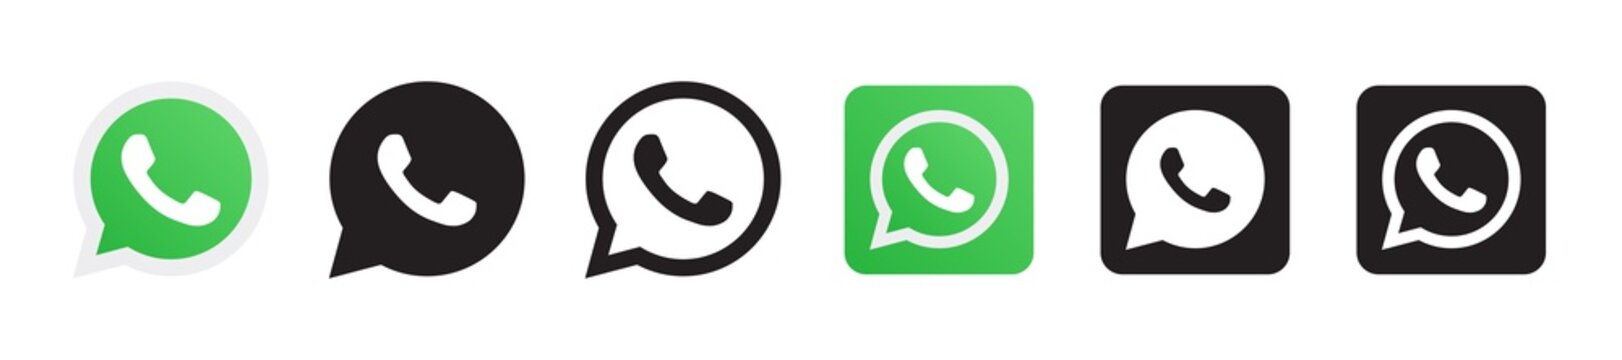 Whatsapp logo set in six different versions in a flat design